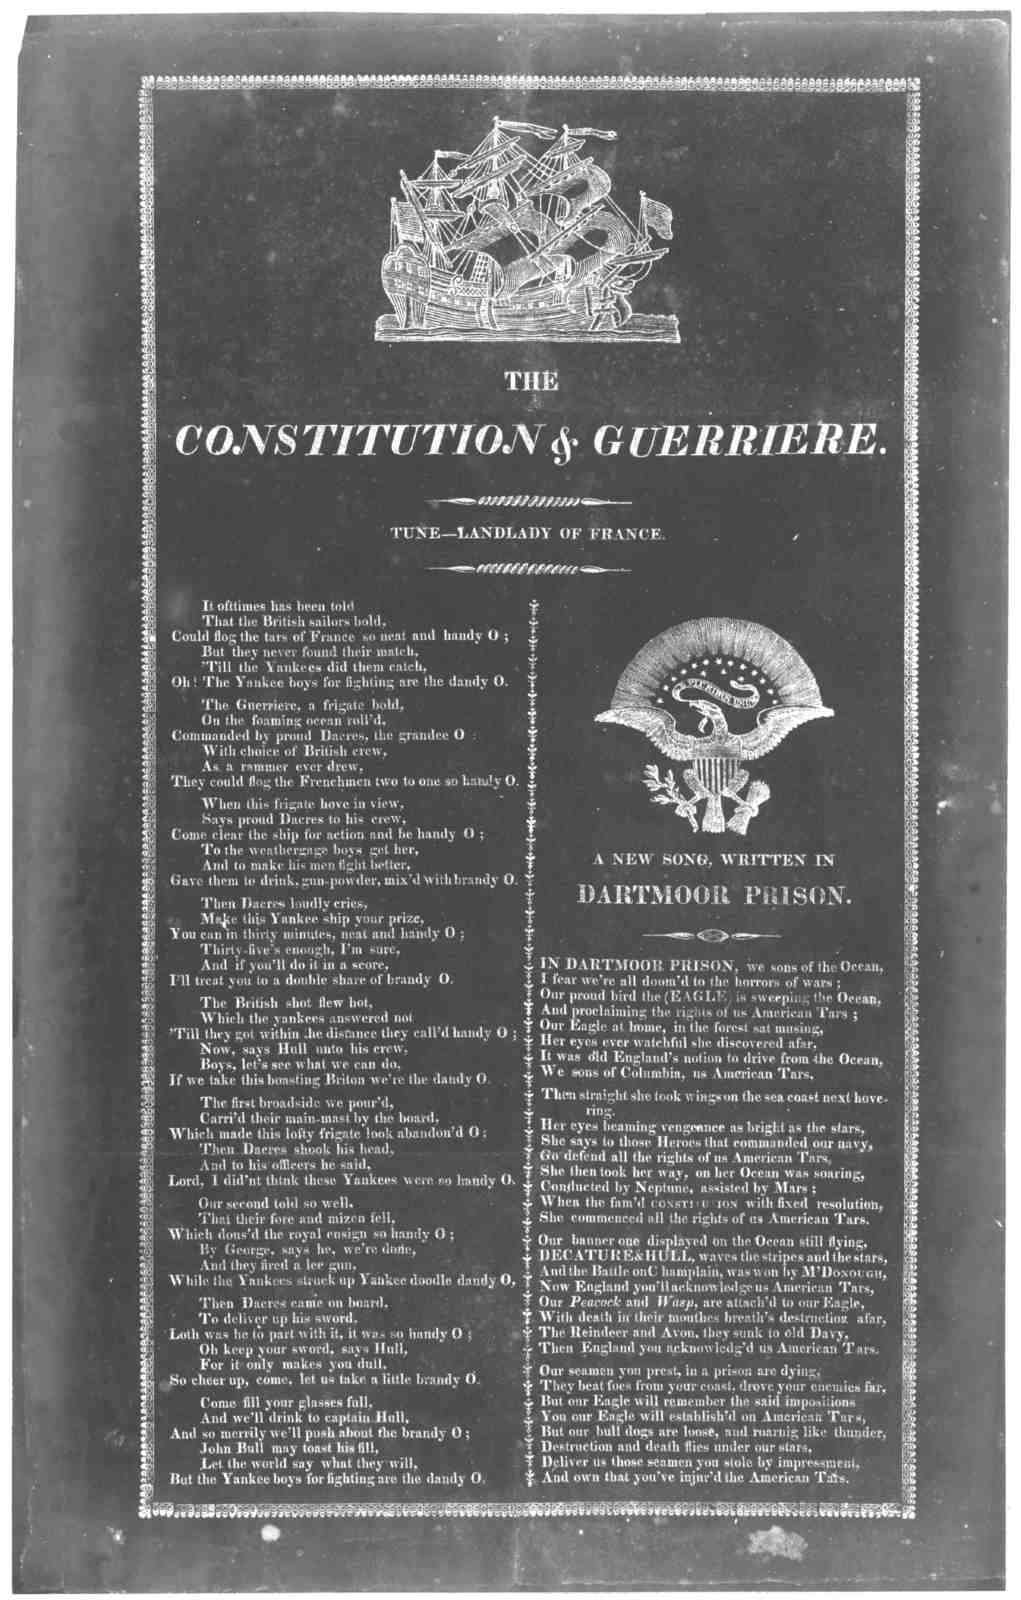 [Cut of ship] The constitution & Guerriere. Tune. - Landlady of France. [Followed by A new song, written in Dartmoor prison. [1813].